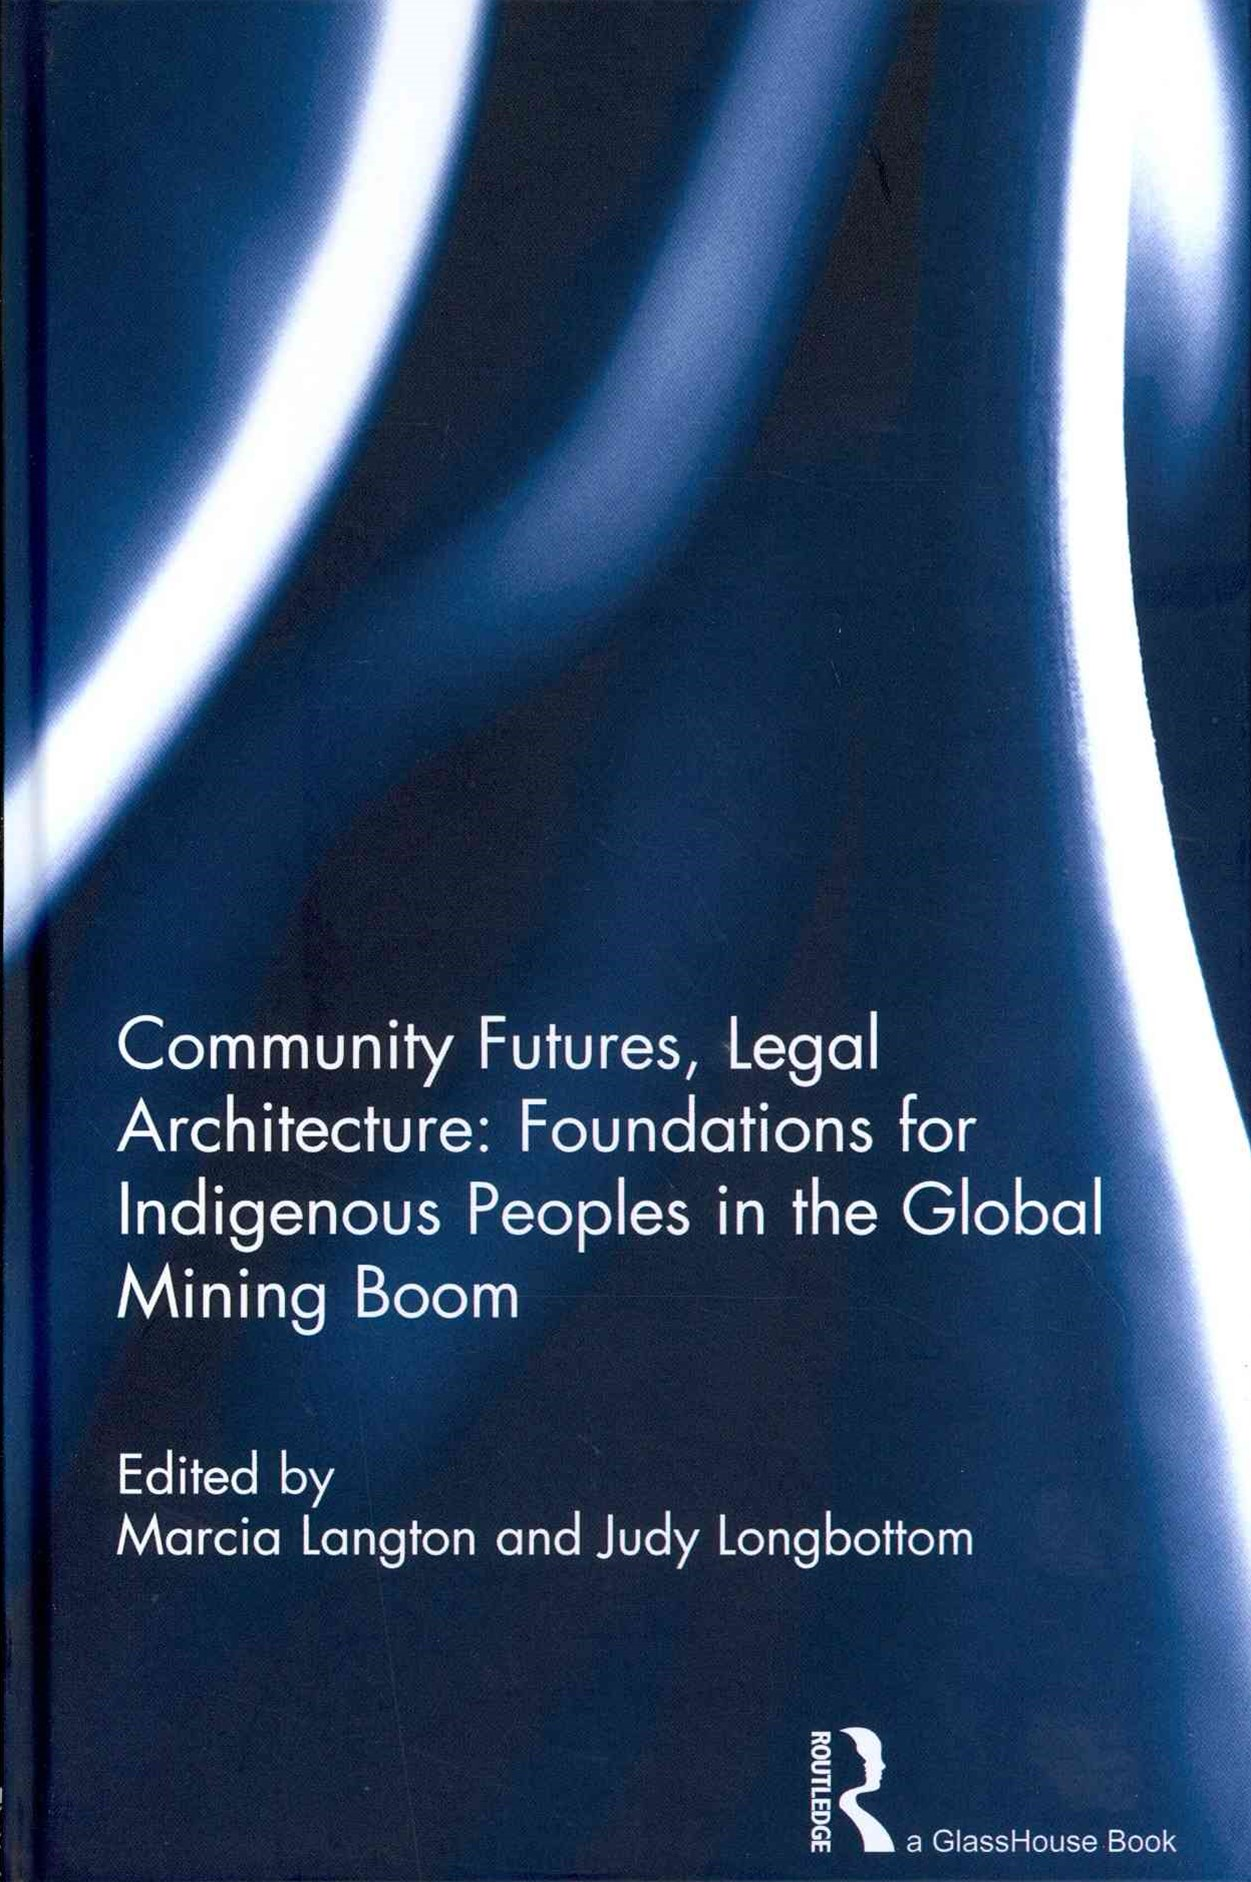 Community Futures, Legal Architecture